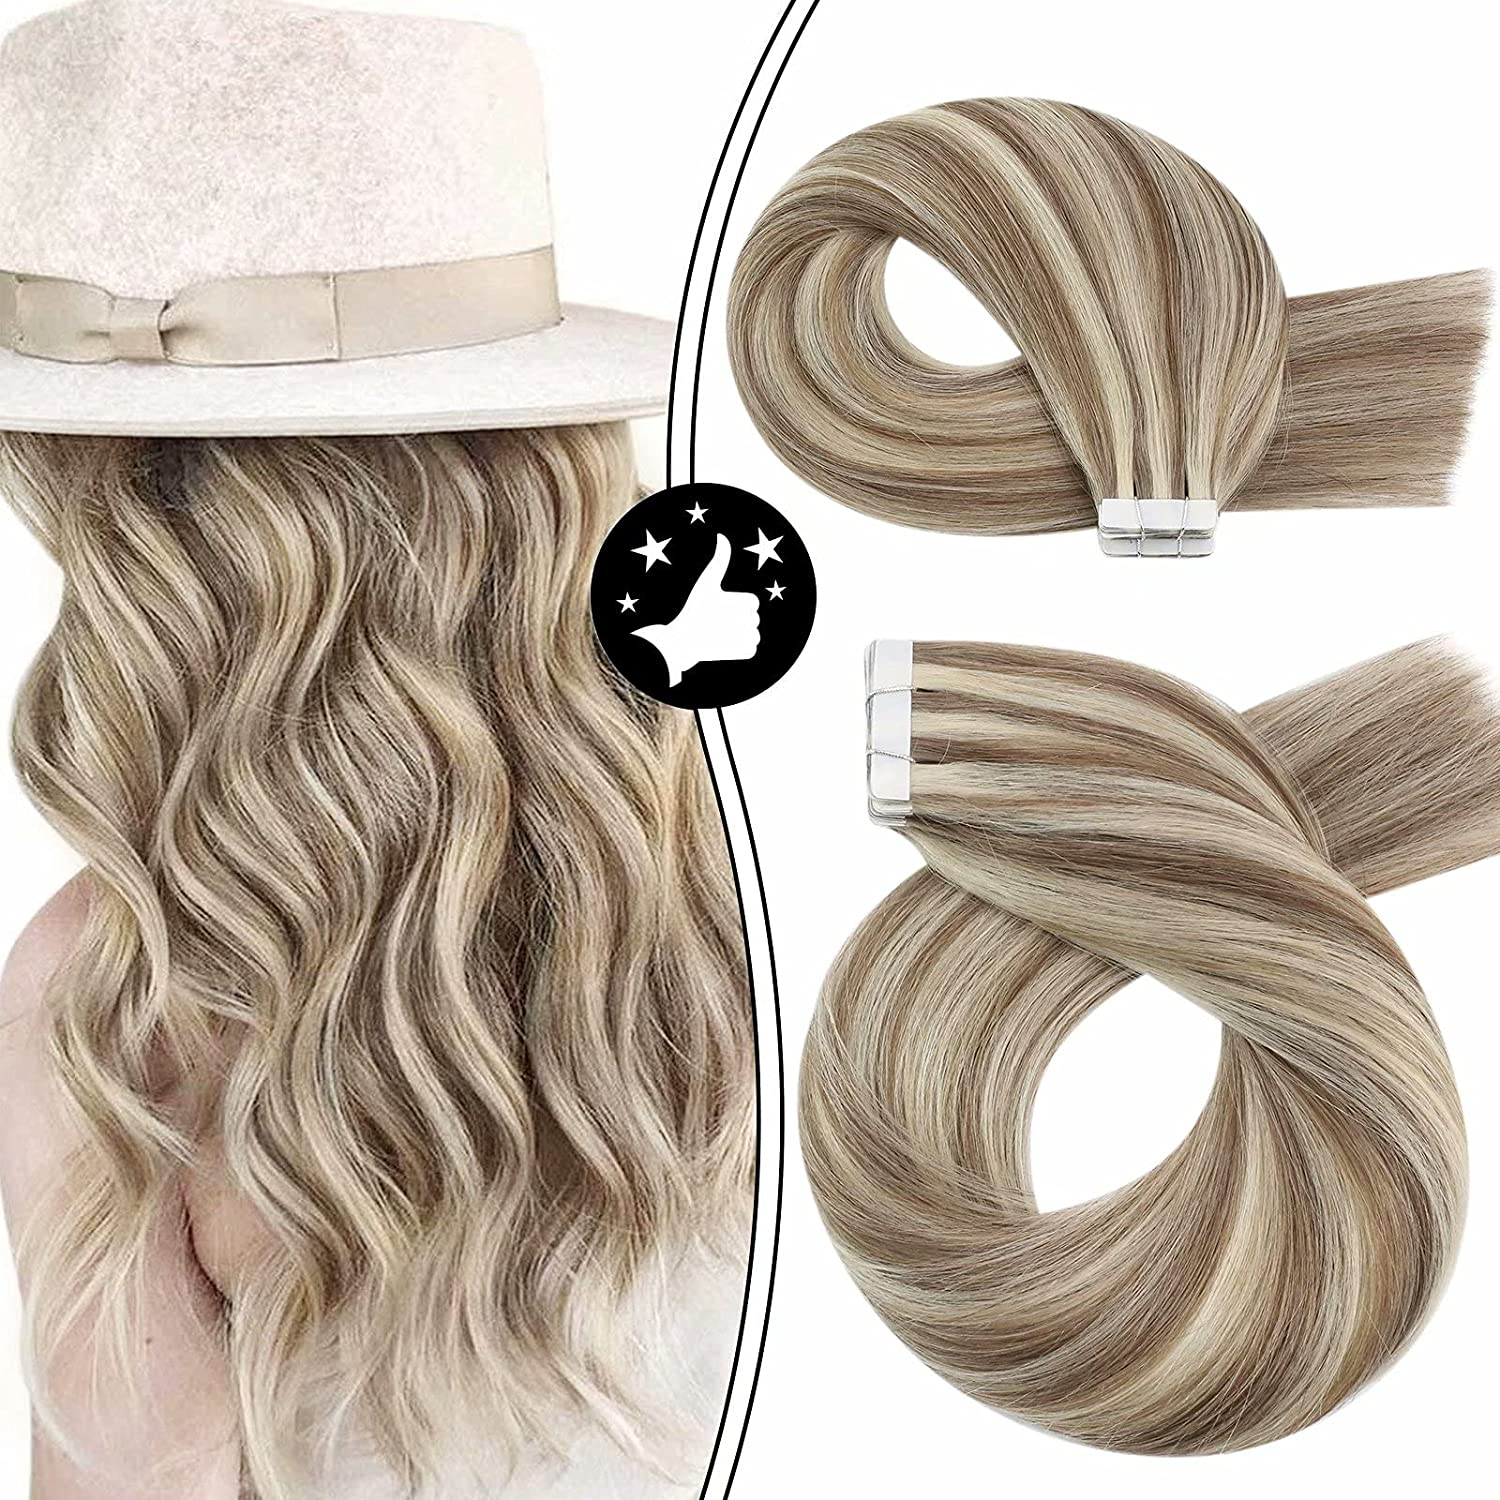 Moresoo Tape in Hair Extensions Dallas Mall 24inch Exte Remy Human New sales